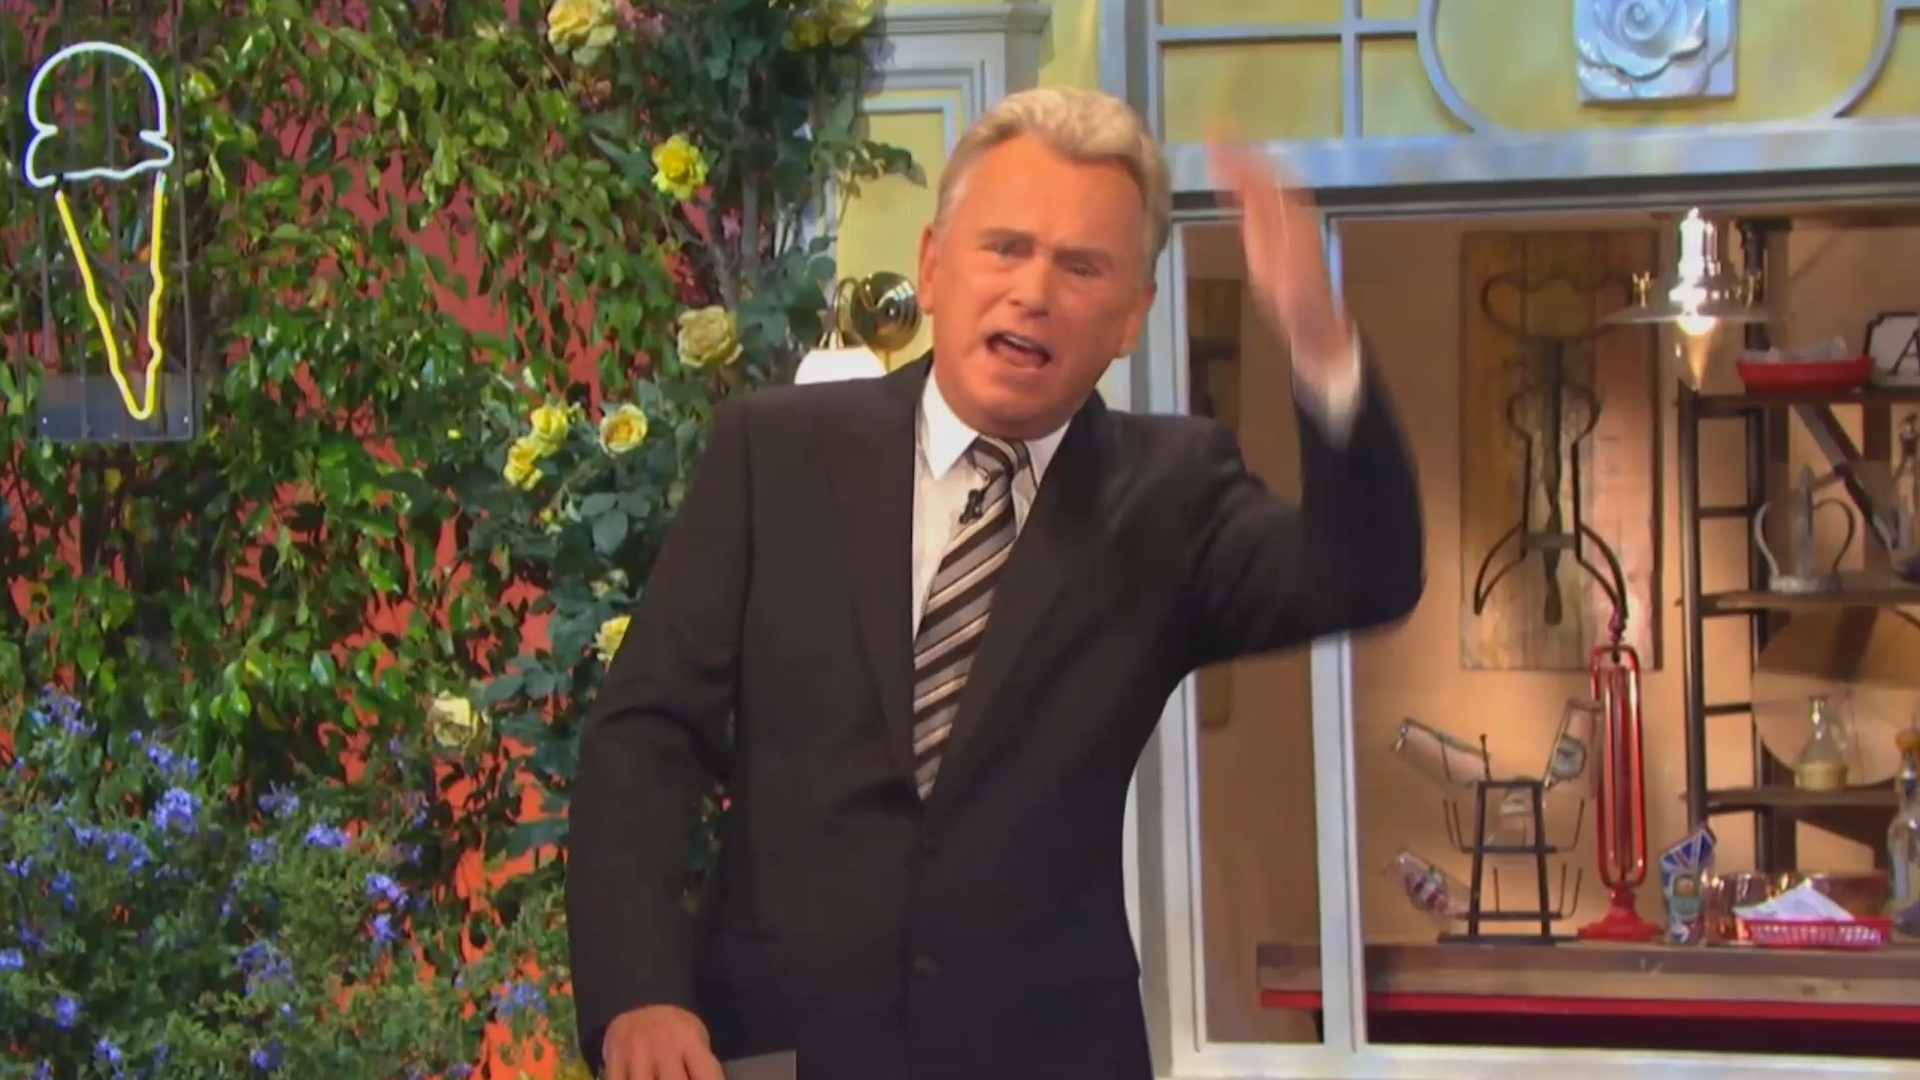 Pat Sajak apologizes for yelling at 'ungrateful' contestant on 'Wheel of Fortune': 'I finally snapped'